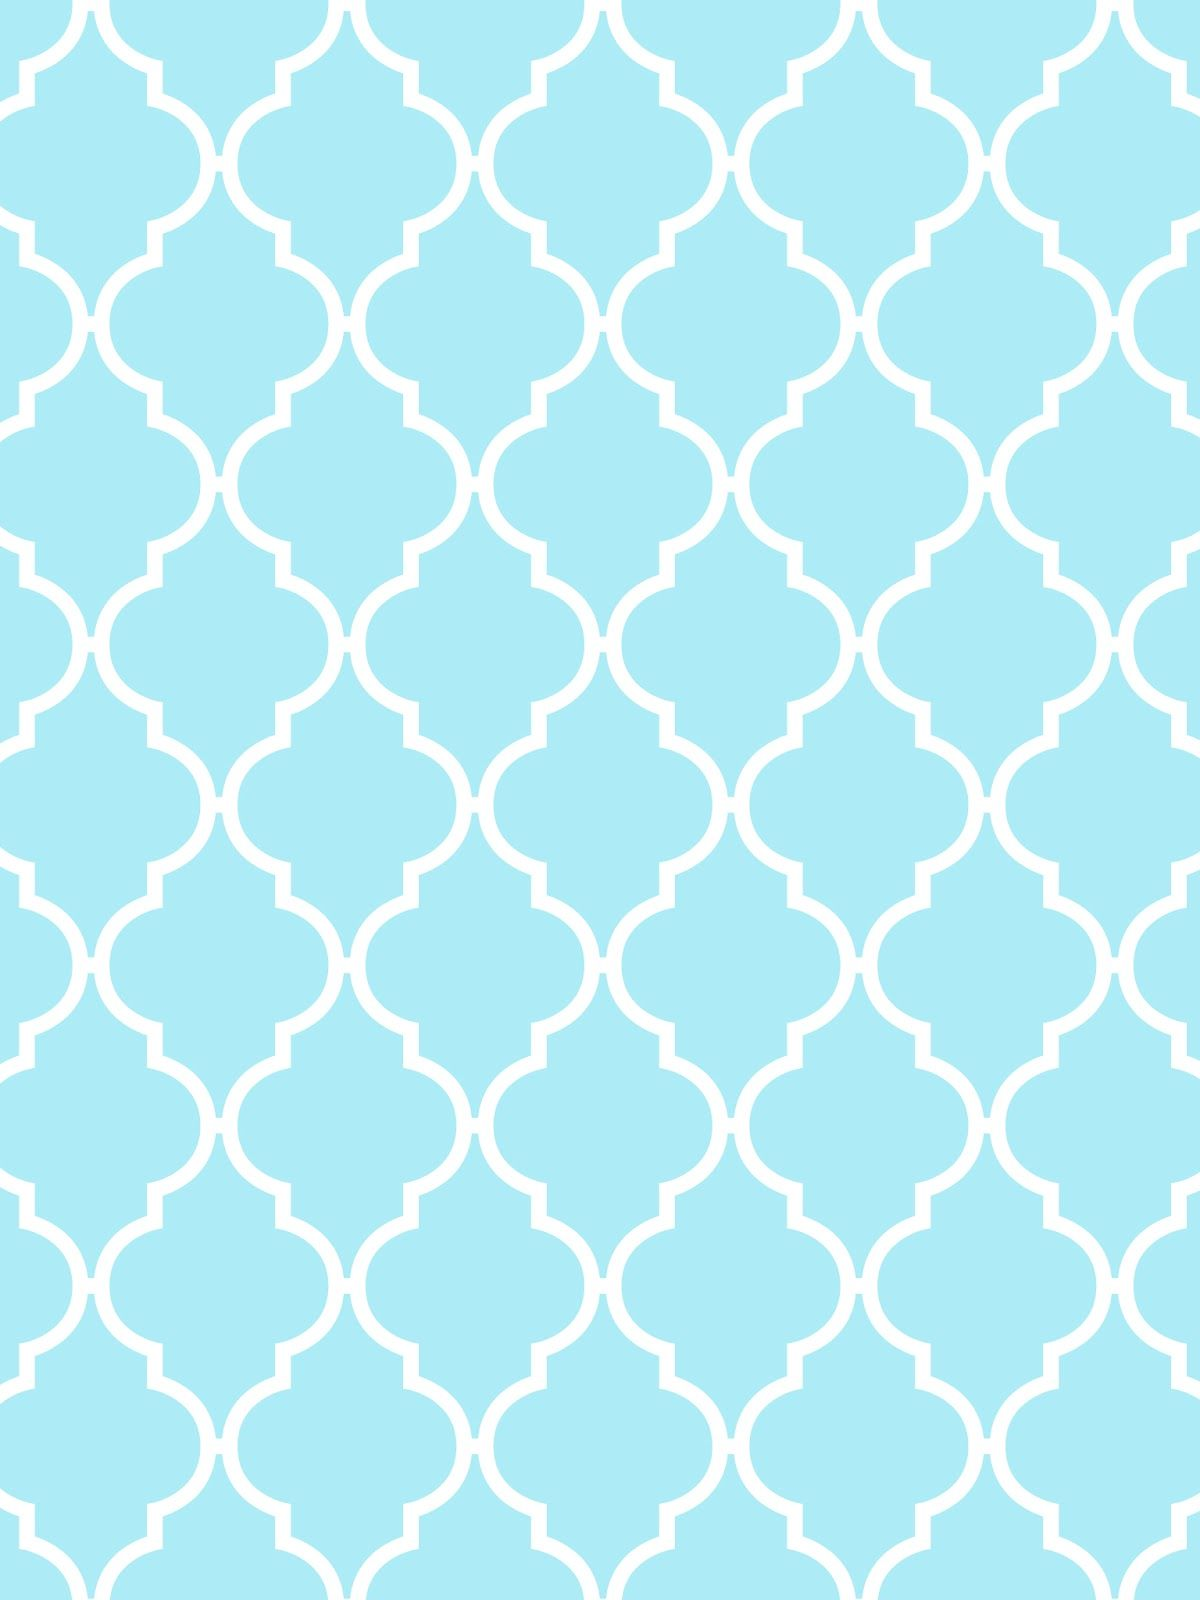 Make it Create Printables & Backgrounds Wallpapers Quatrefoil